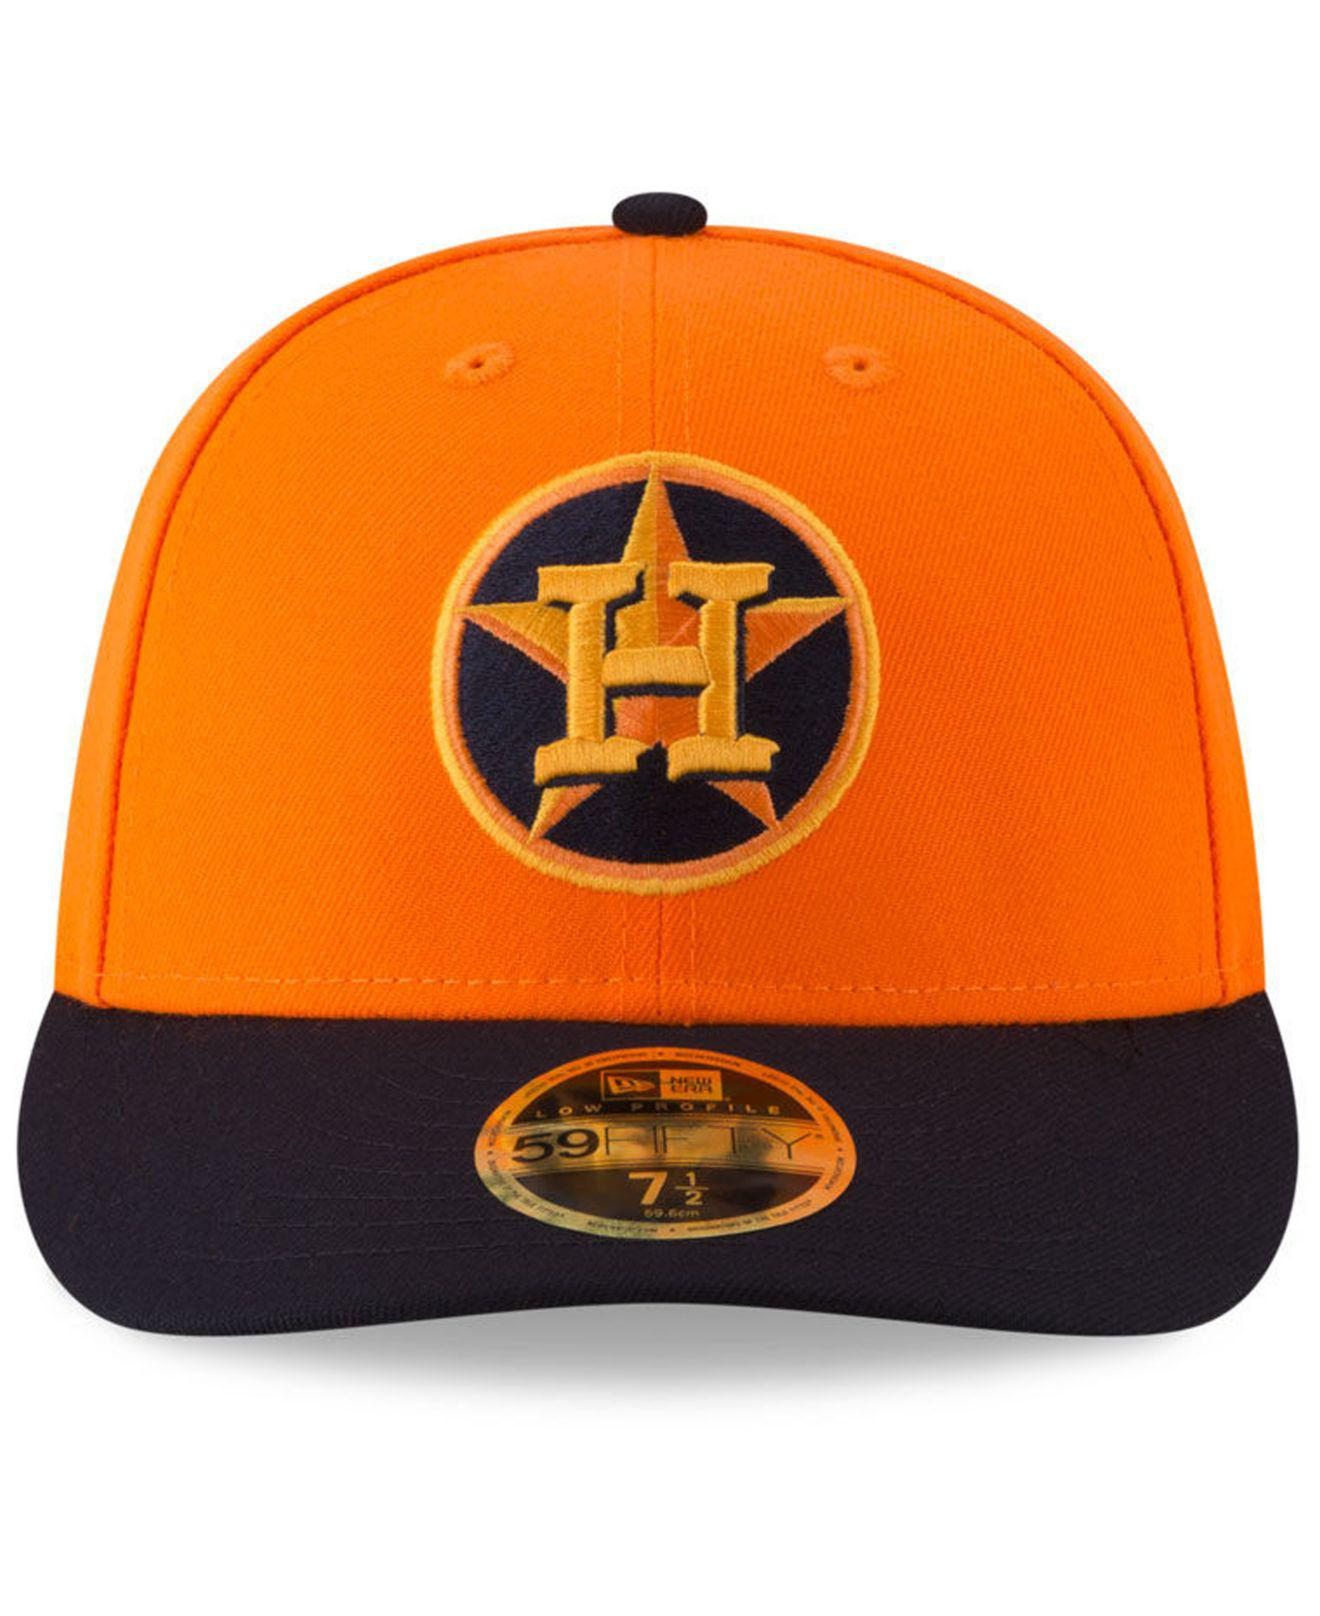 cc117a821c9 Lyst - Ktz Houston Astros Players Weekend Low Profile 59fifty Fitted Cap in  Orange for Men